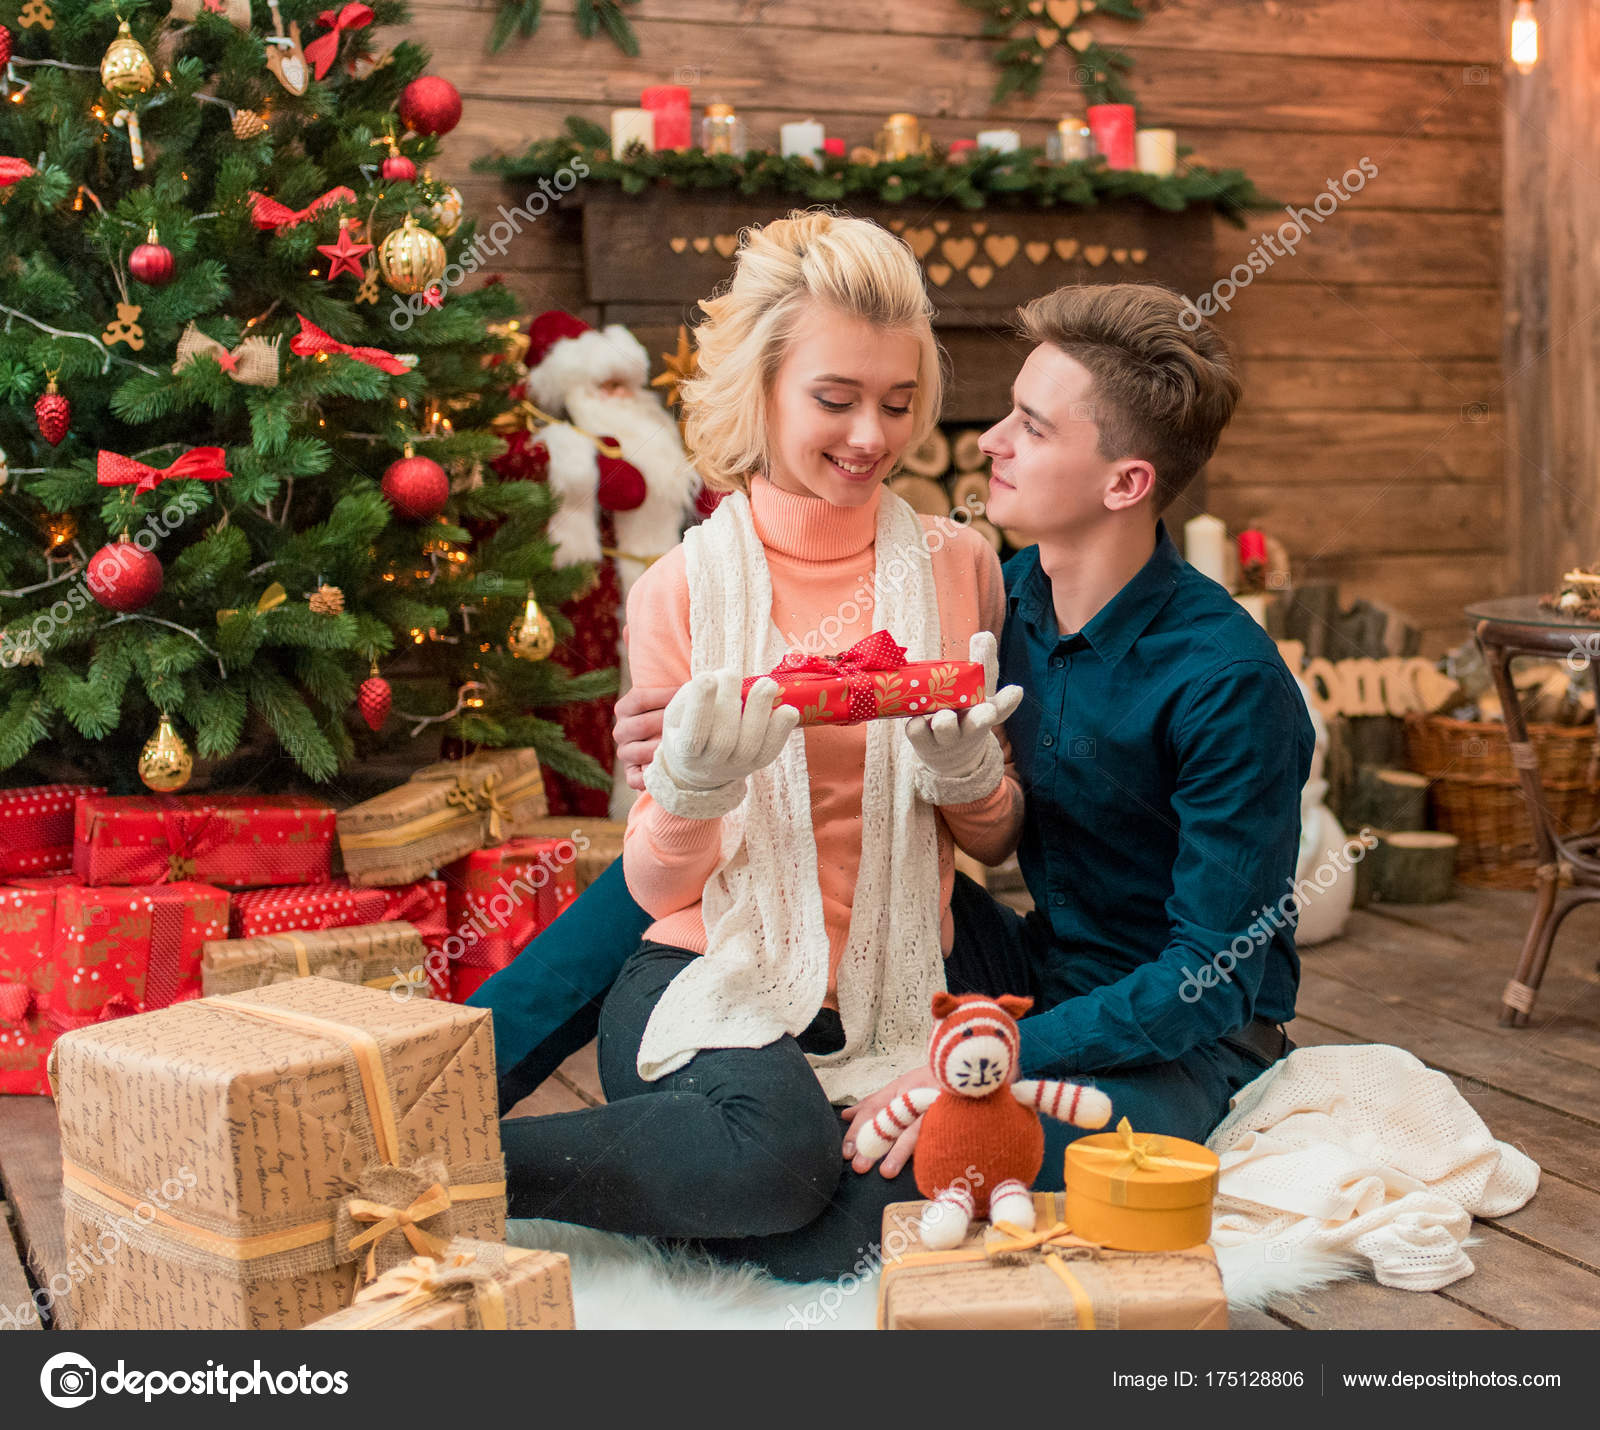 Beautiful Christmas Gifts For Married Couples Young Part - 8: Happiness Young Adult Couple With Gift Boxes In A Warm Home Atmosphere  Celebrating Christmas. Young Just Married Couple In Love.